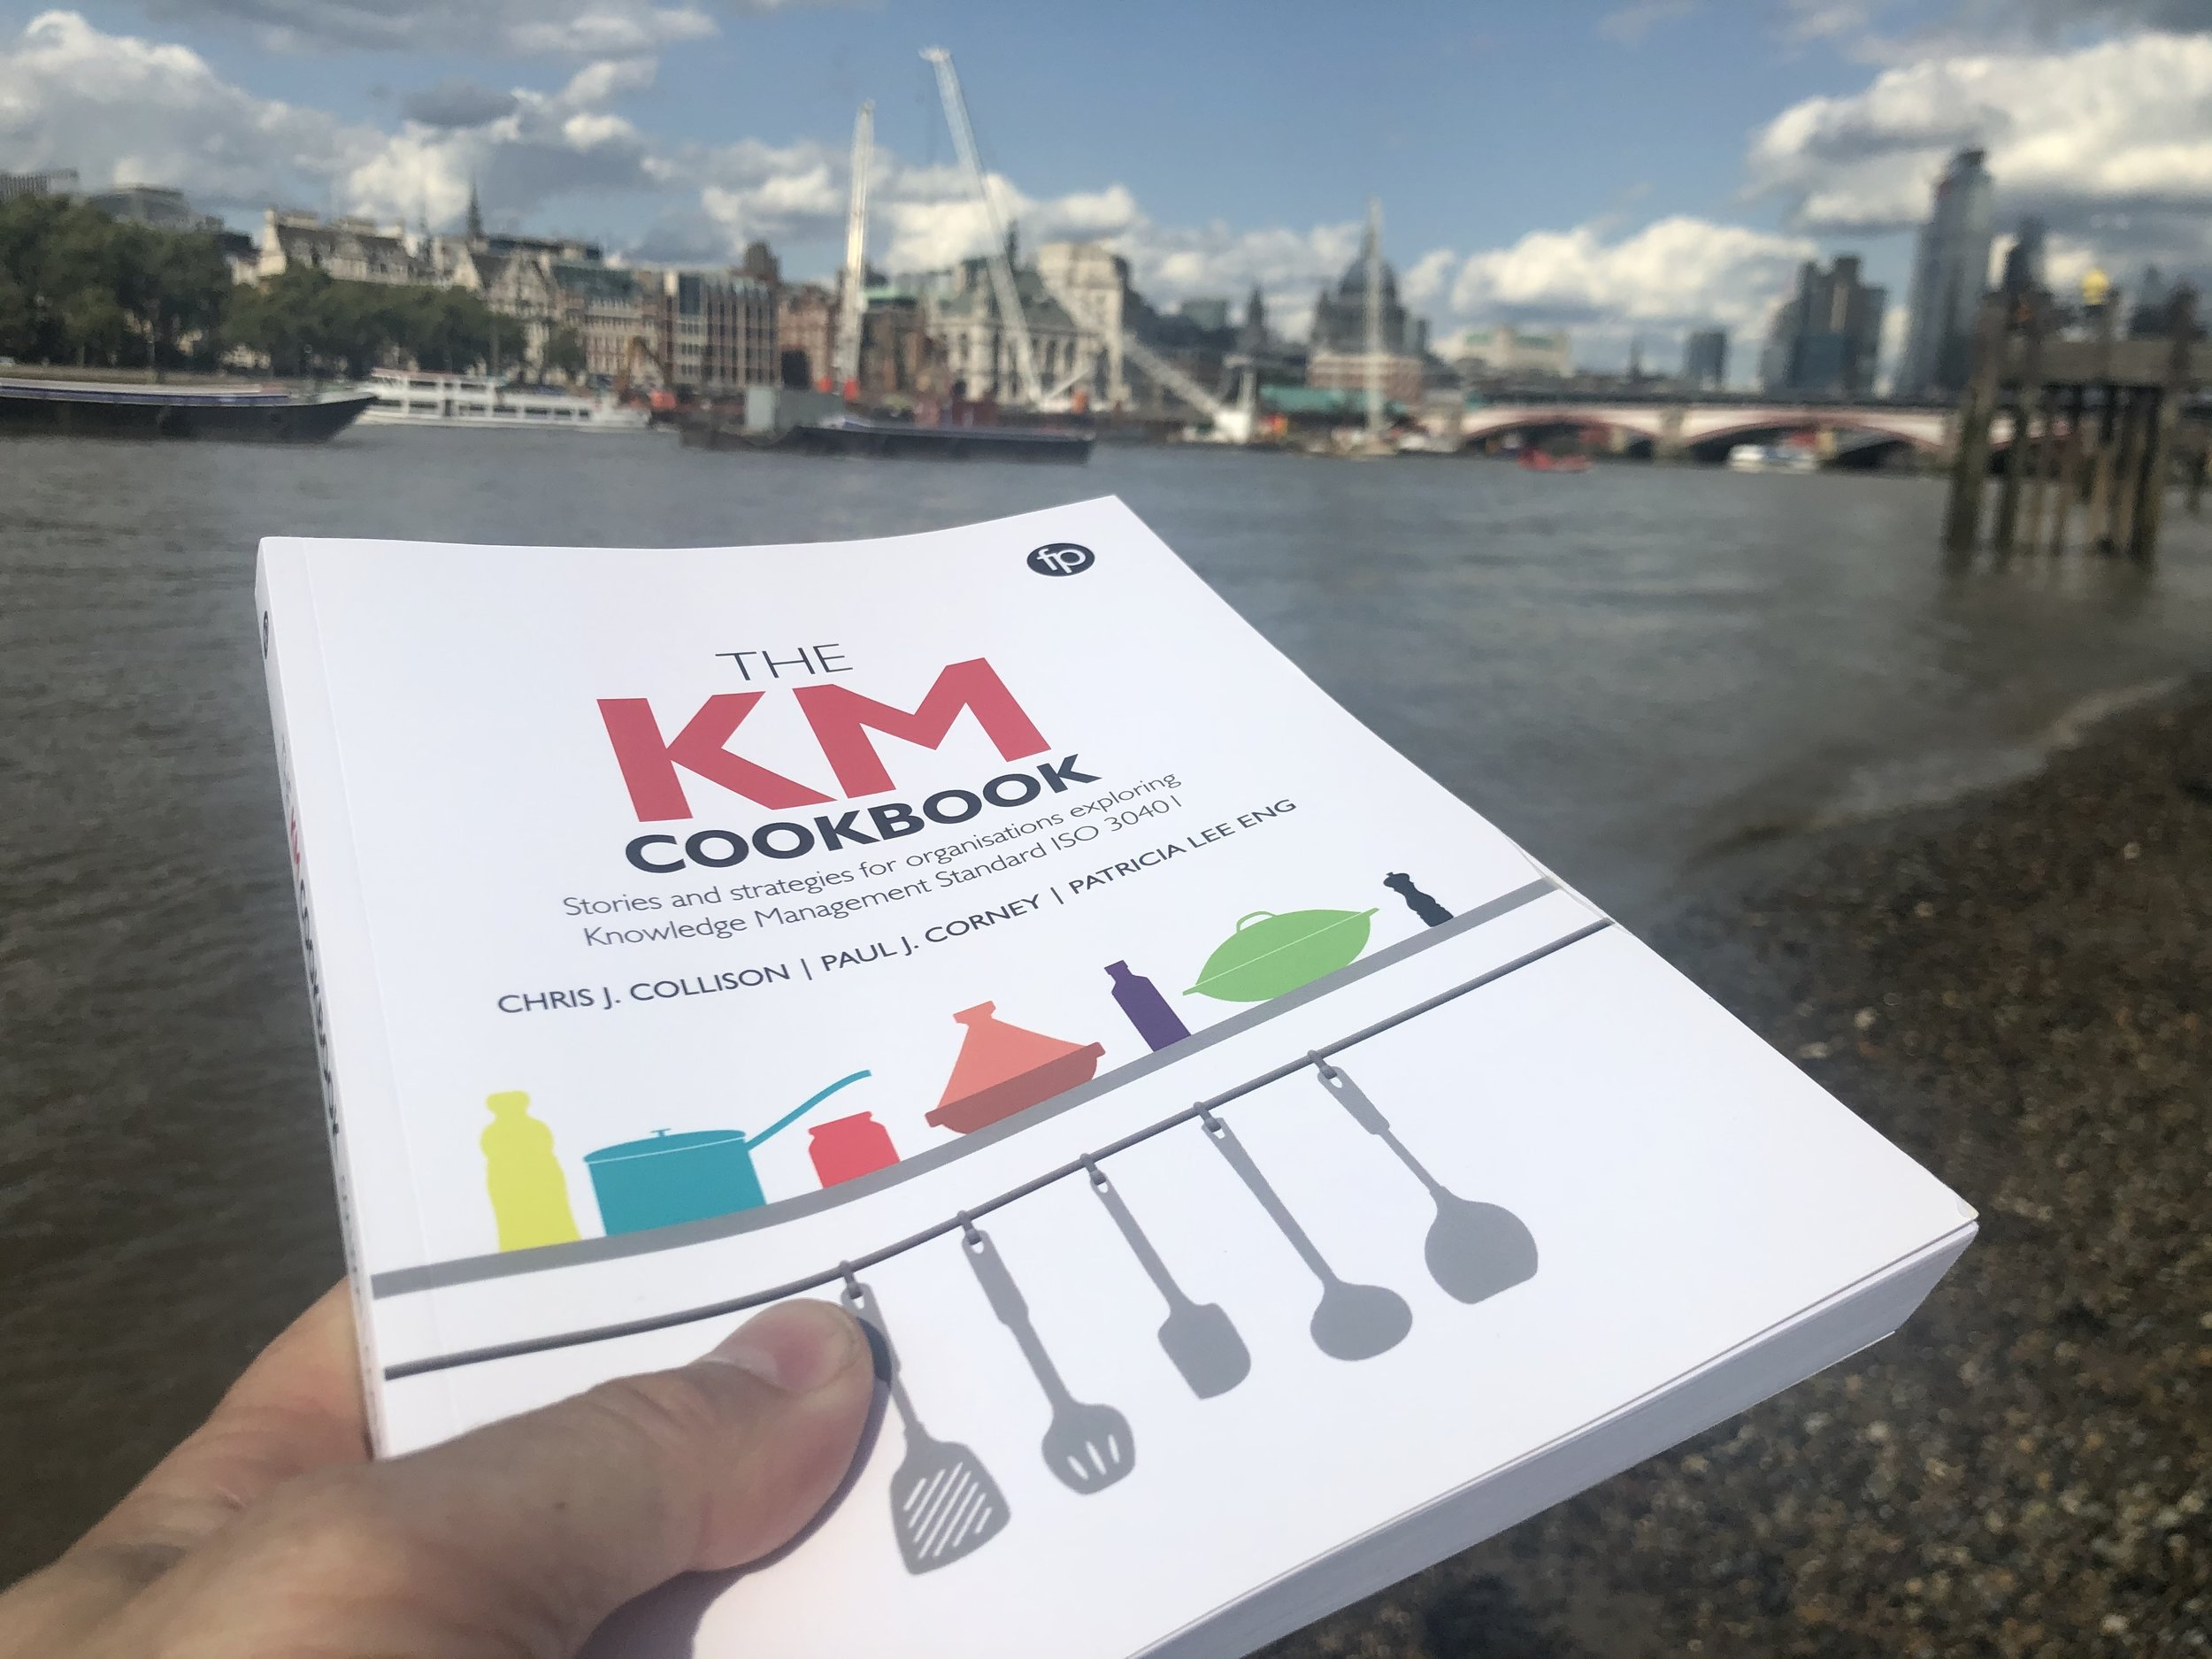 Publication day in London! Heading towards the City to start giving copies to our 'chefs'!!